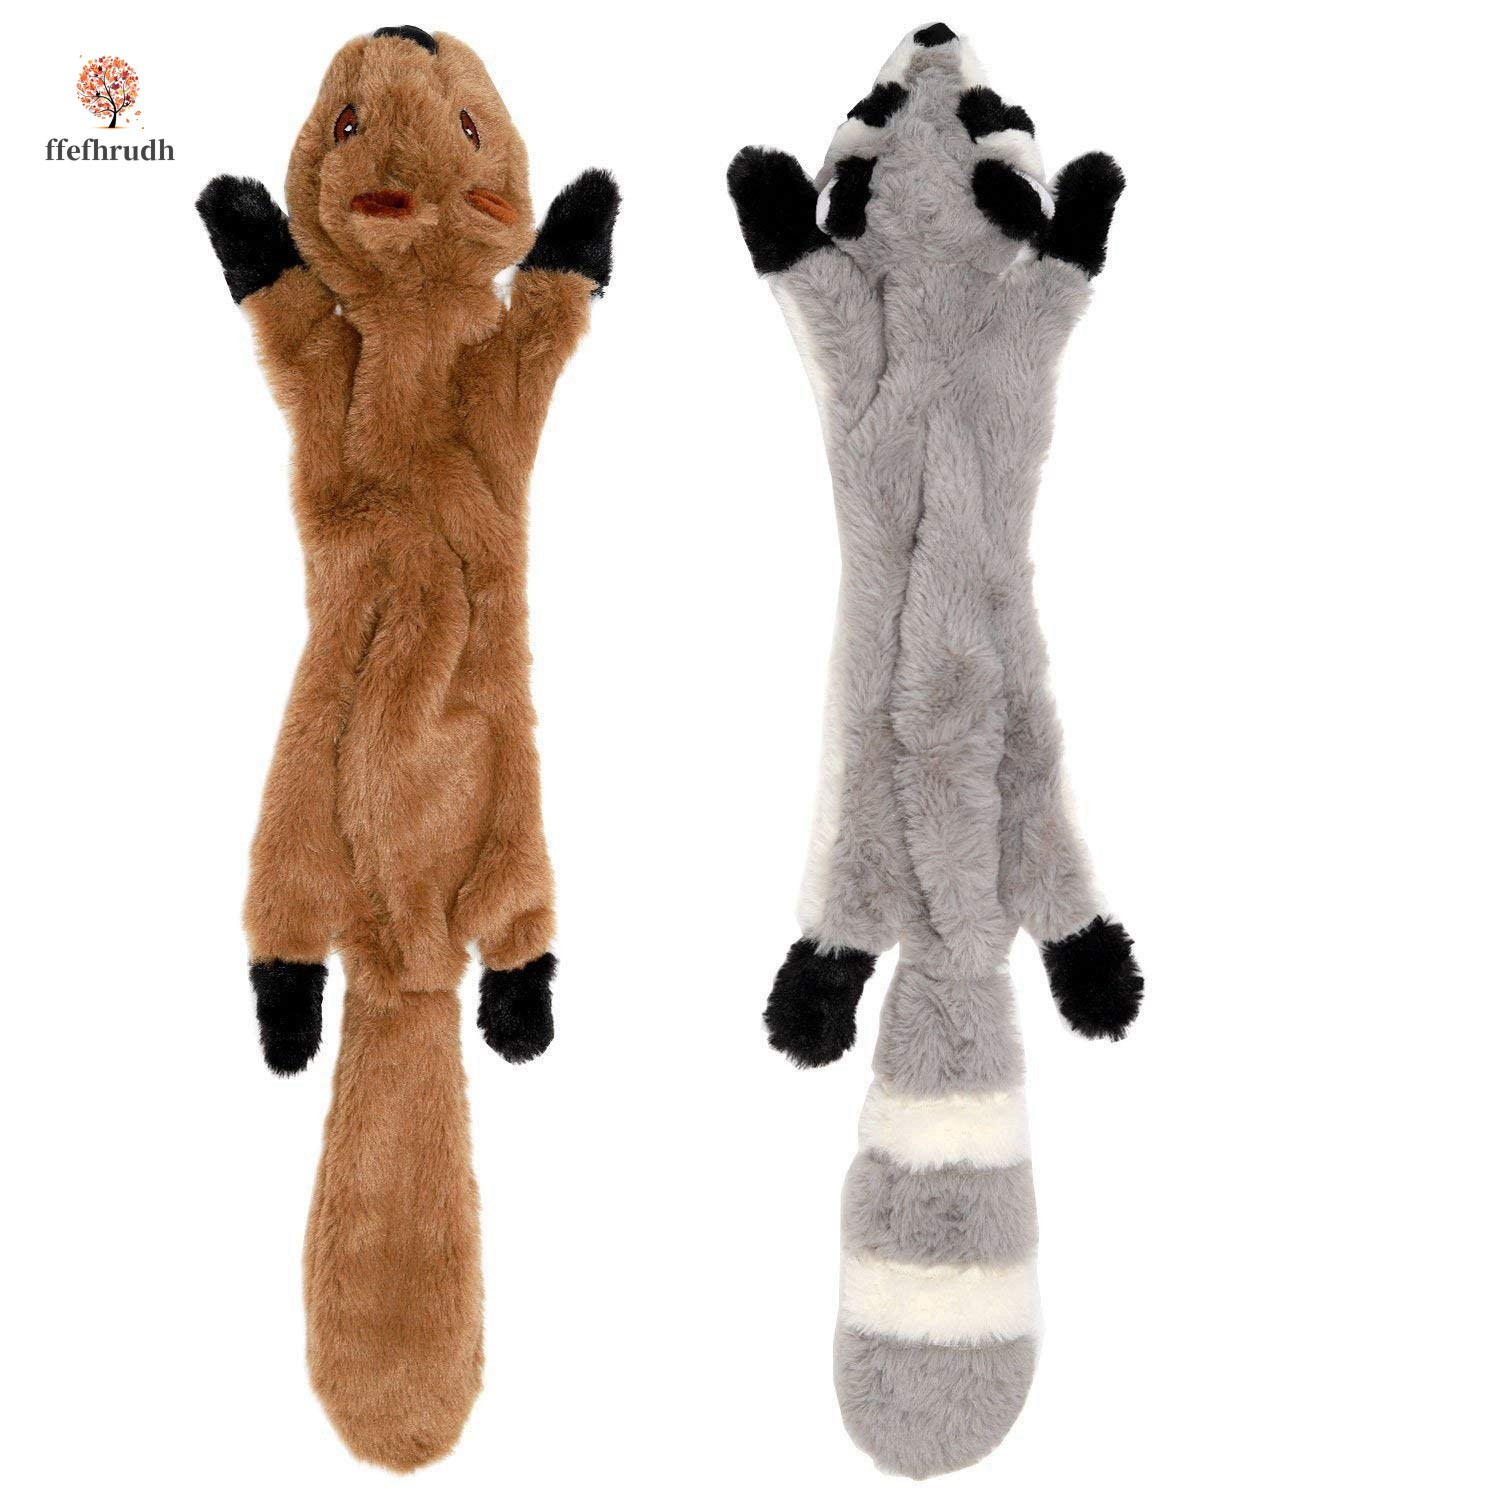 Set Of Dog Stuffed Animals, Cod Dog Chew Toys Set With Squirrel And Raccoon Plush Toy For Dogs 45cm Shopee Indonesia